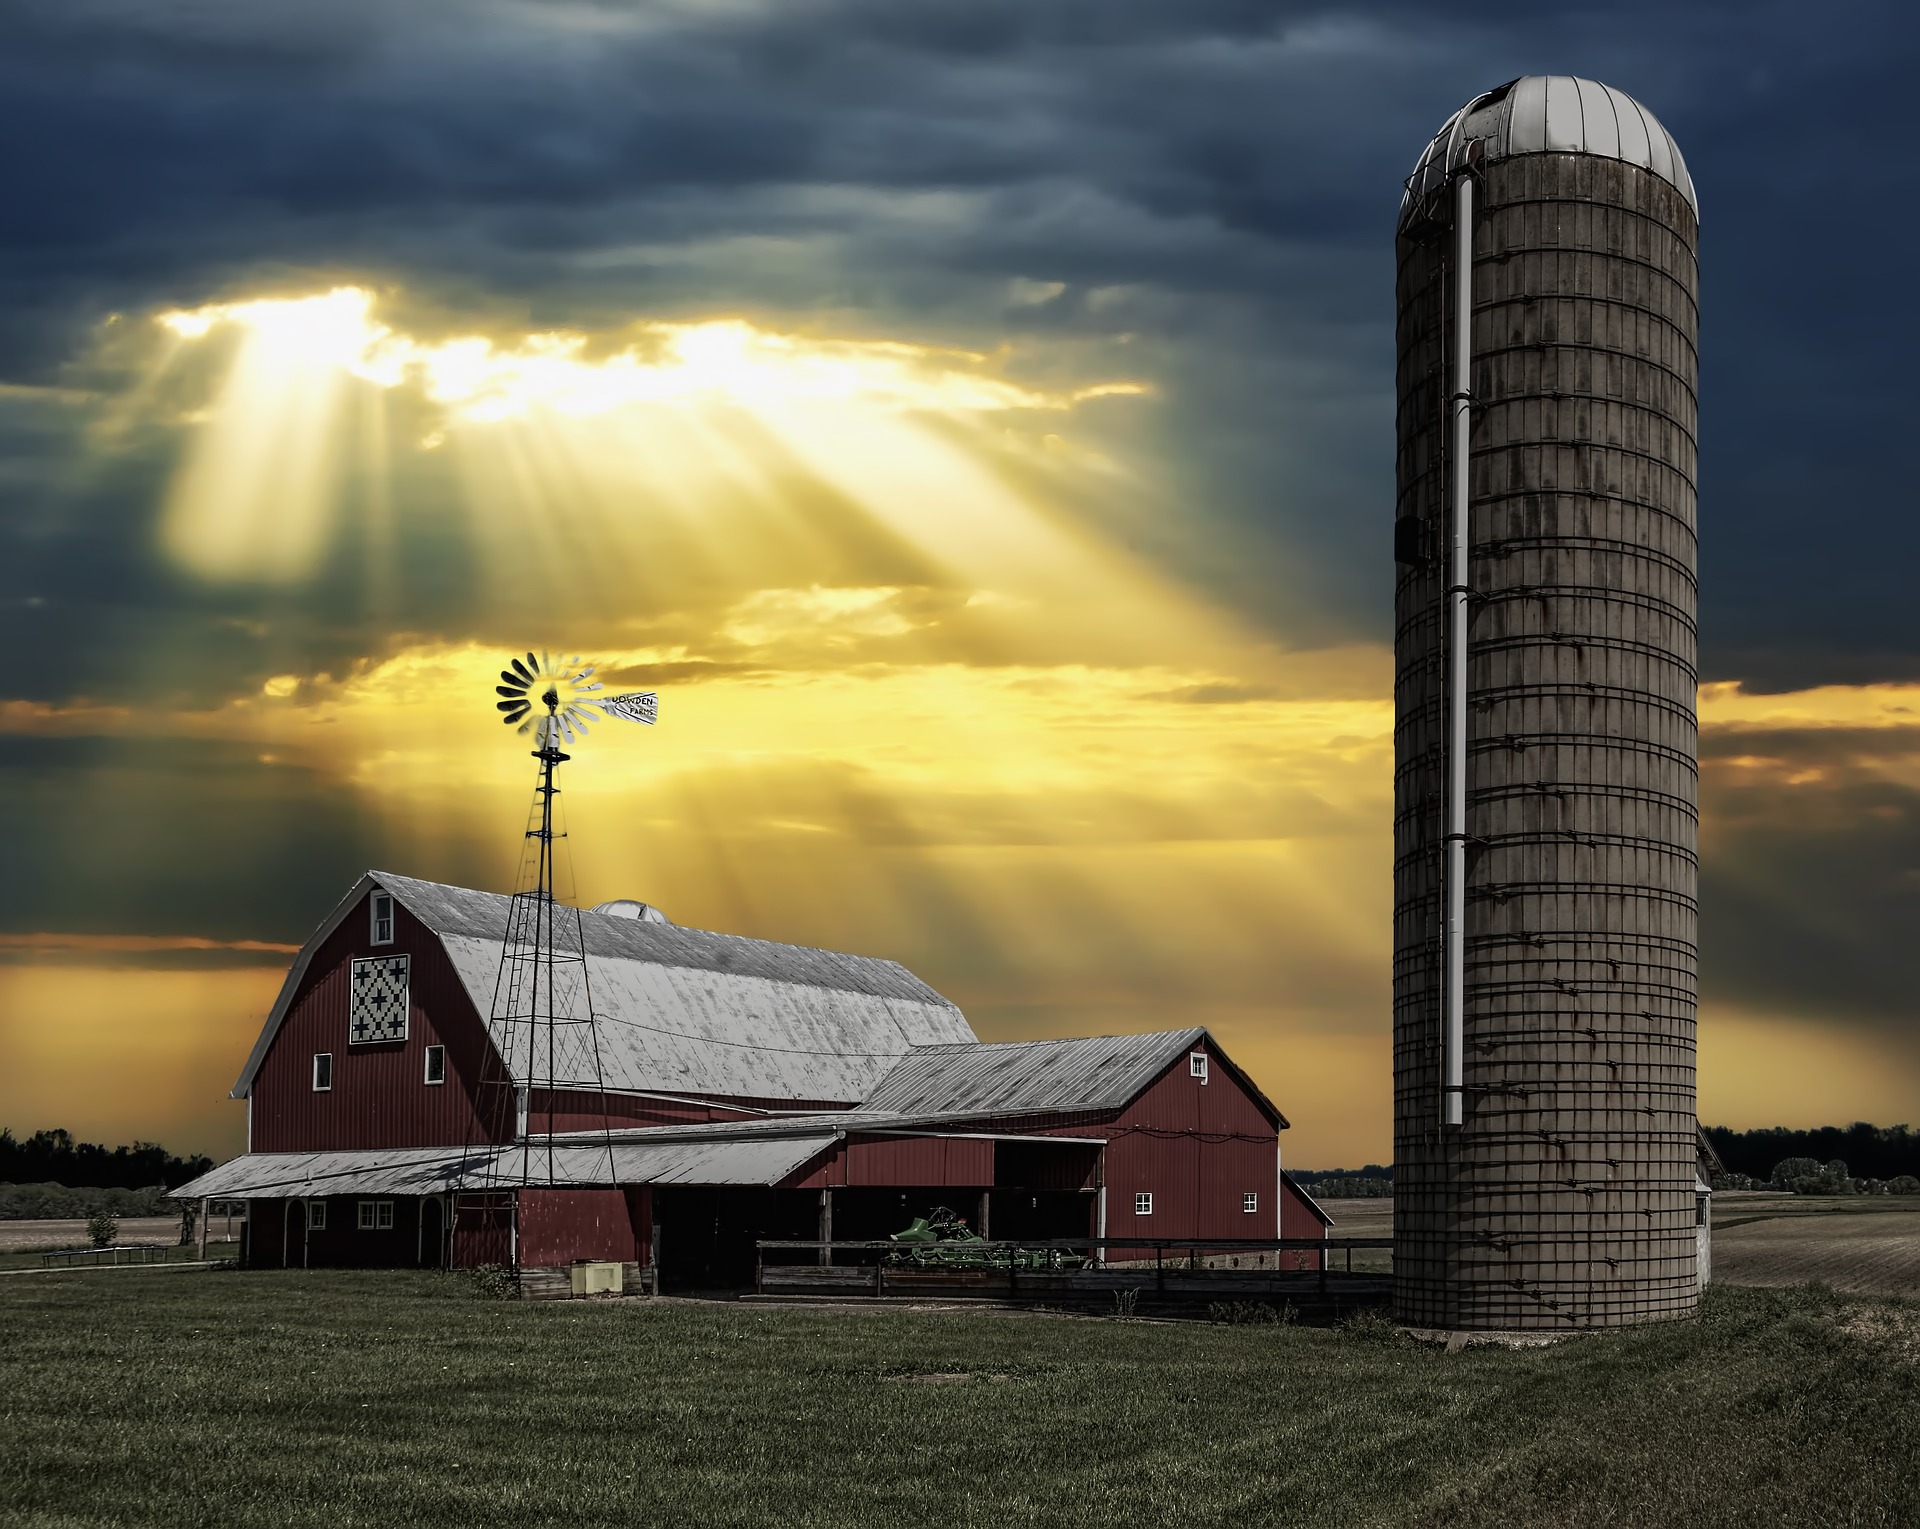 Heavenly Barn on Maryland Farm with Windmill and Quilt